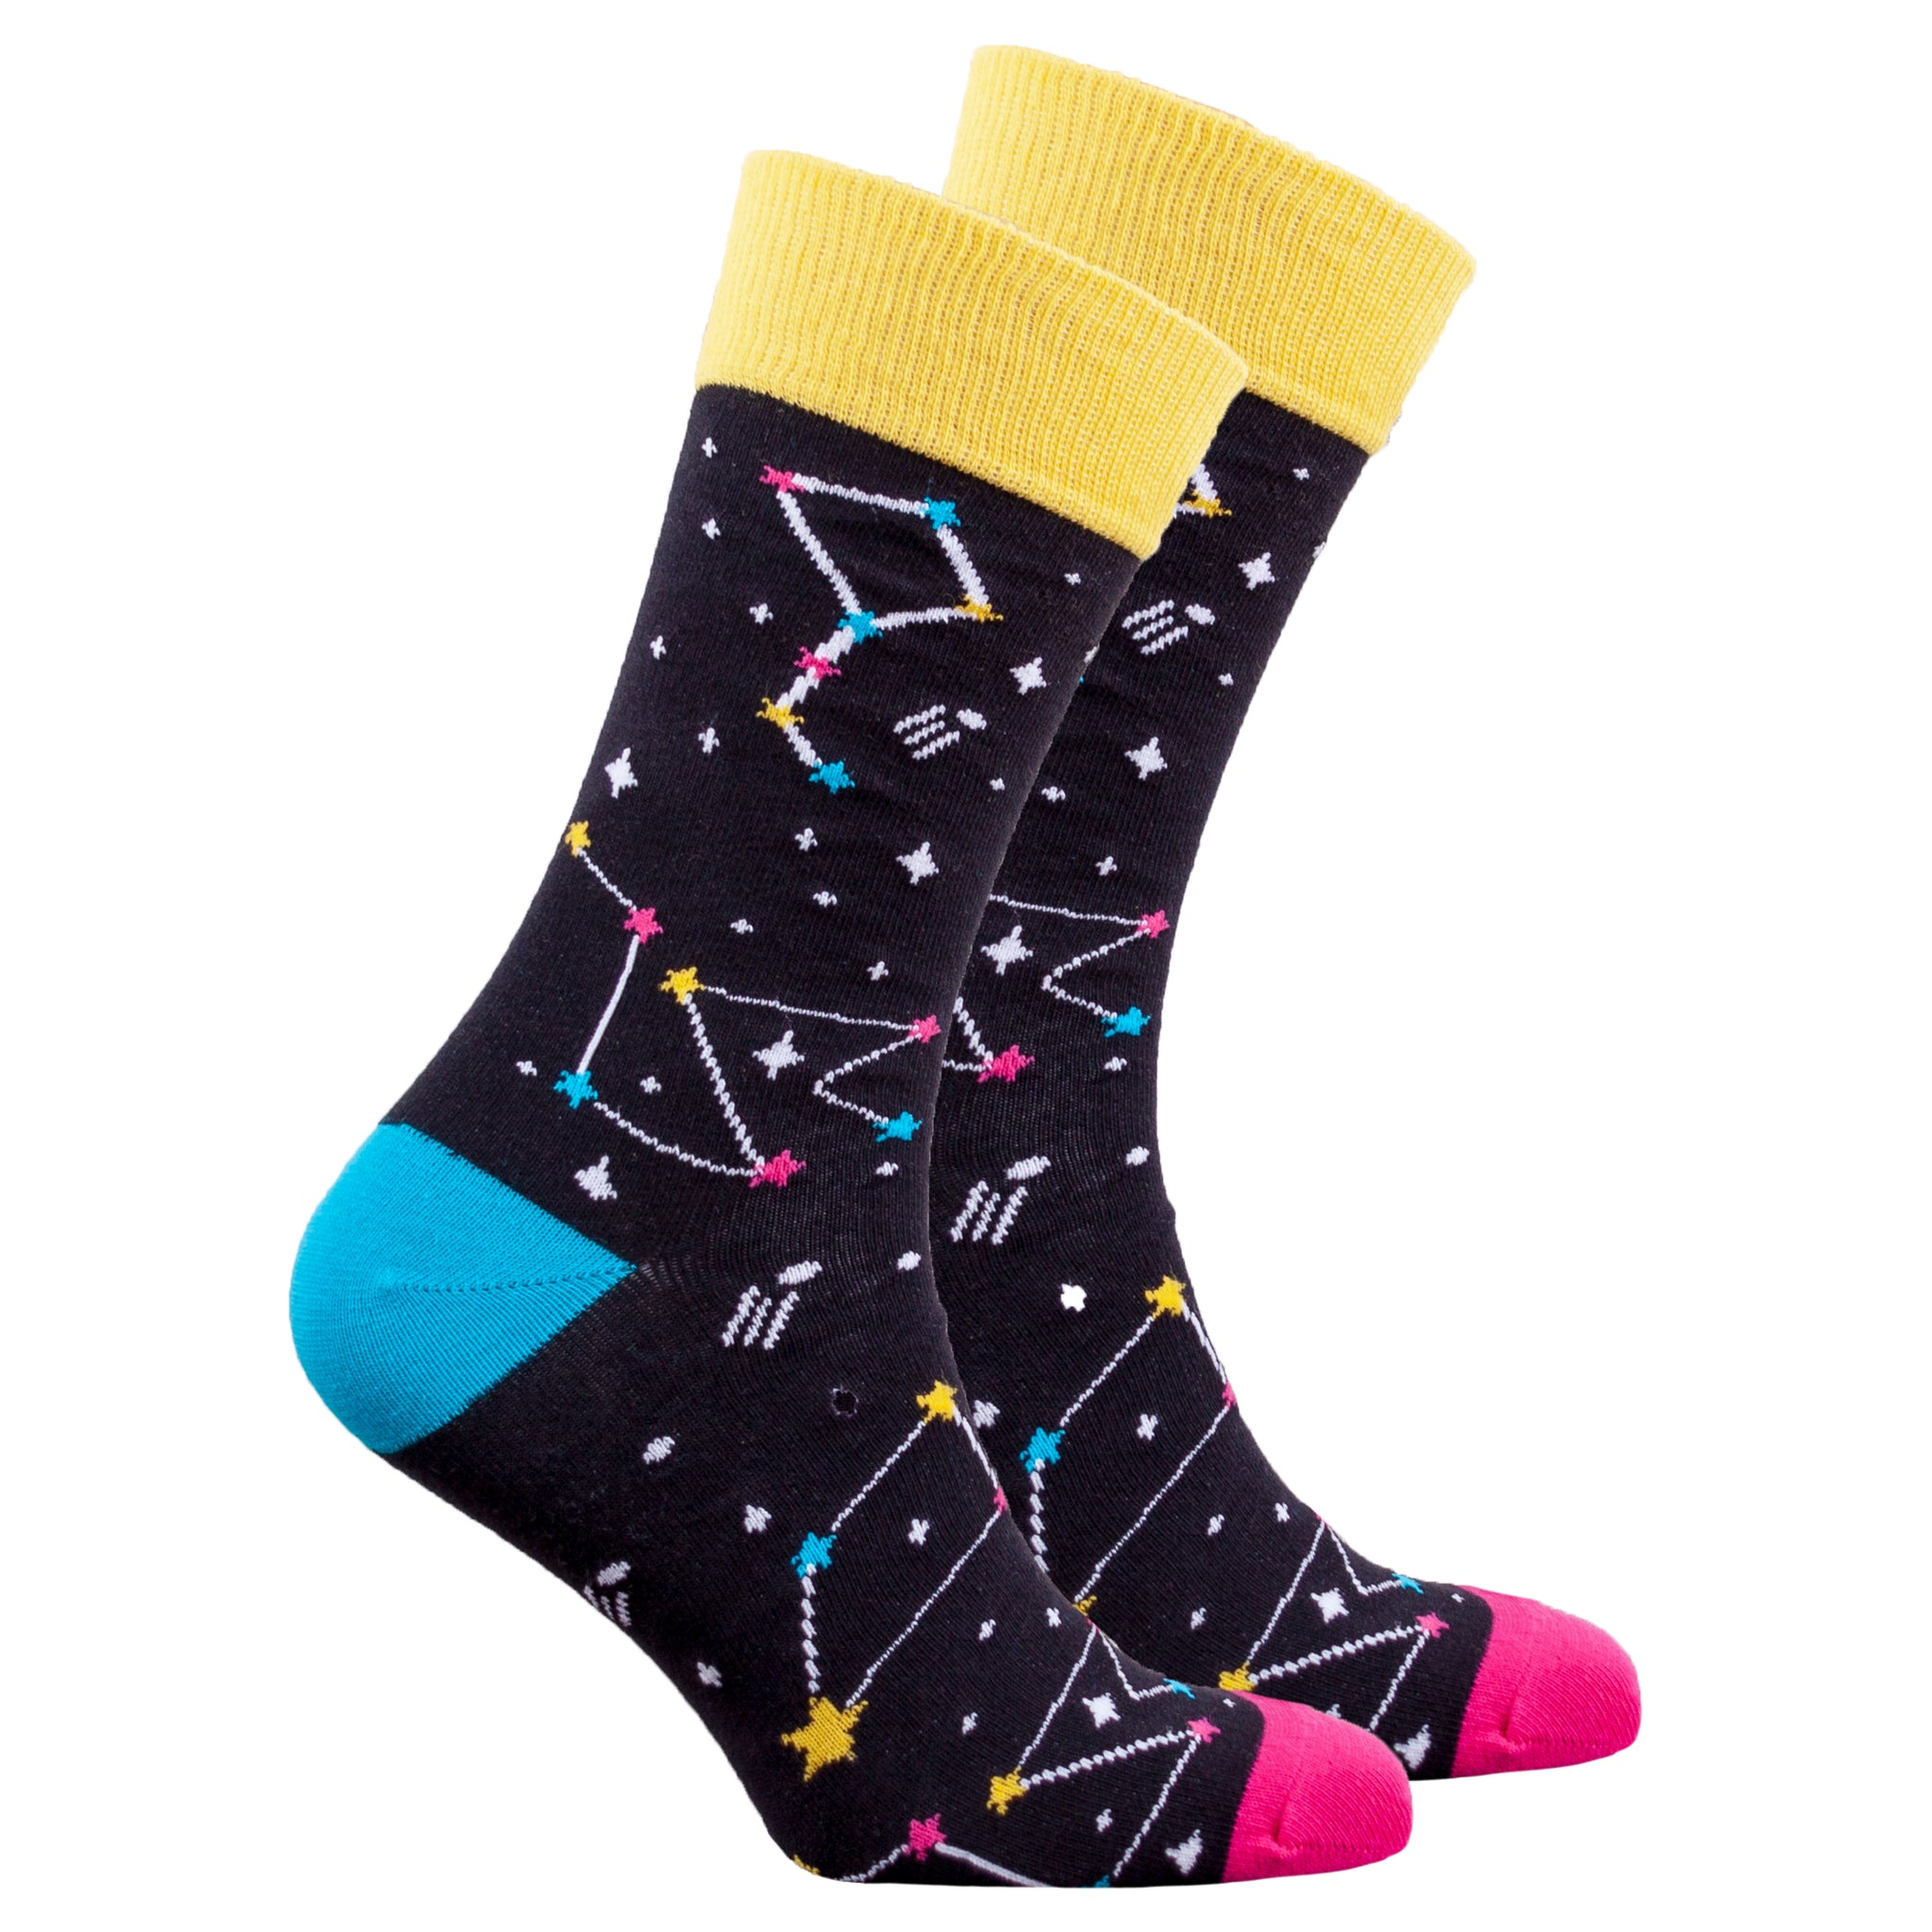 Men's Constellation Socks